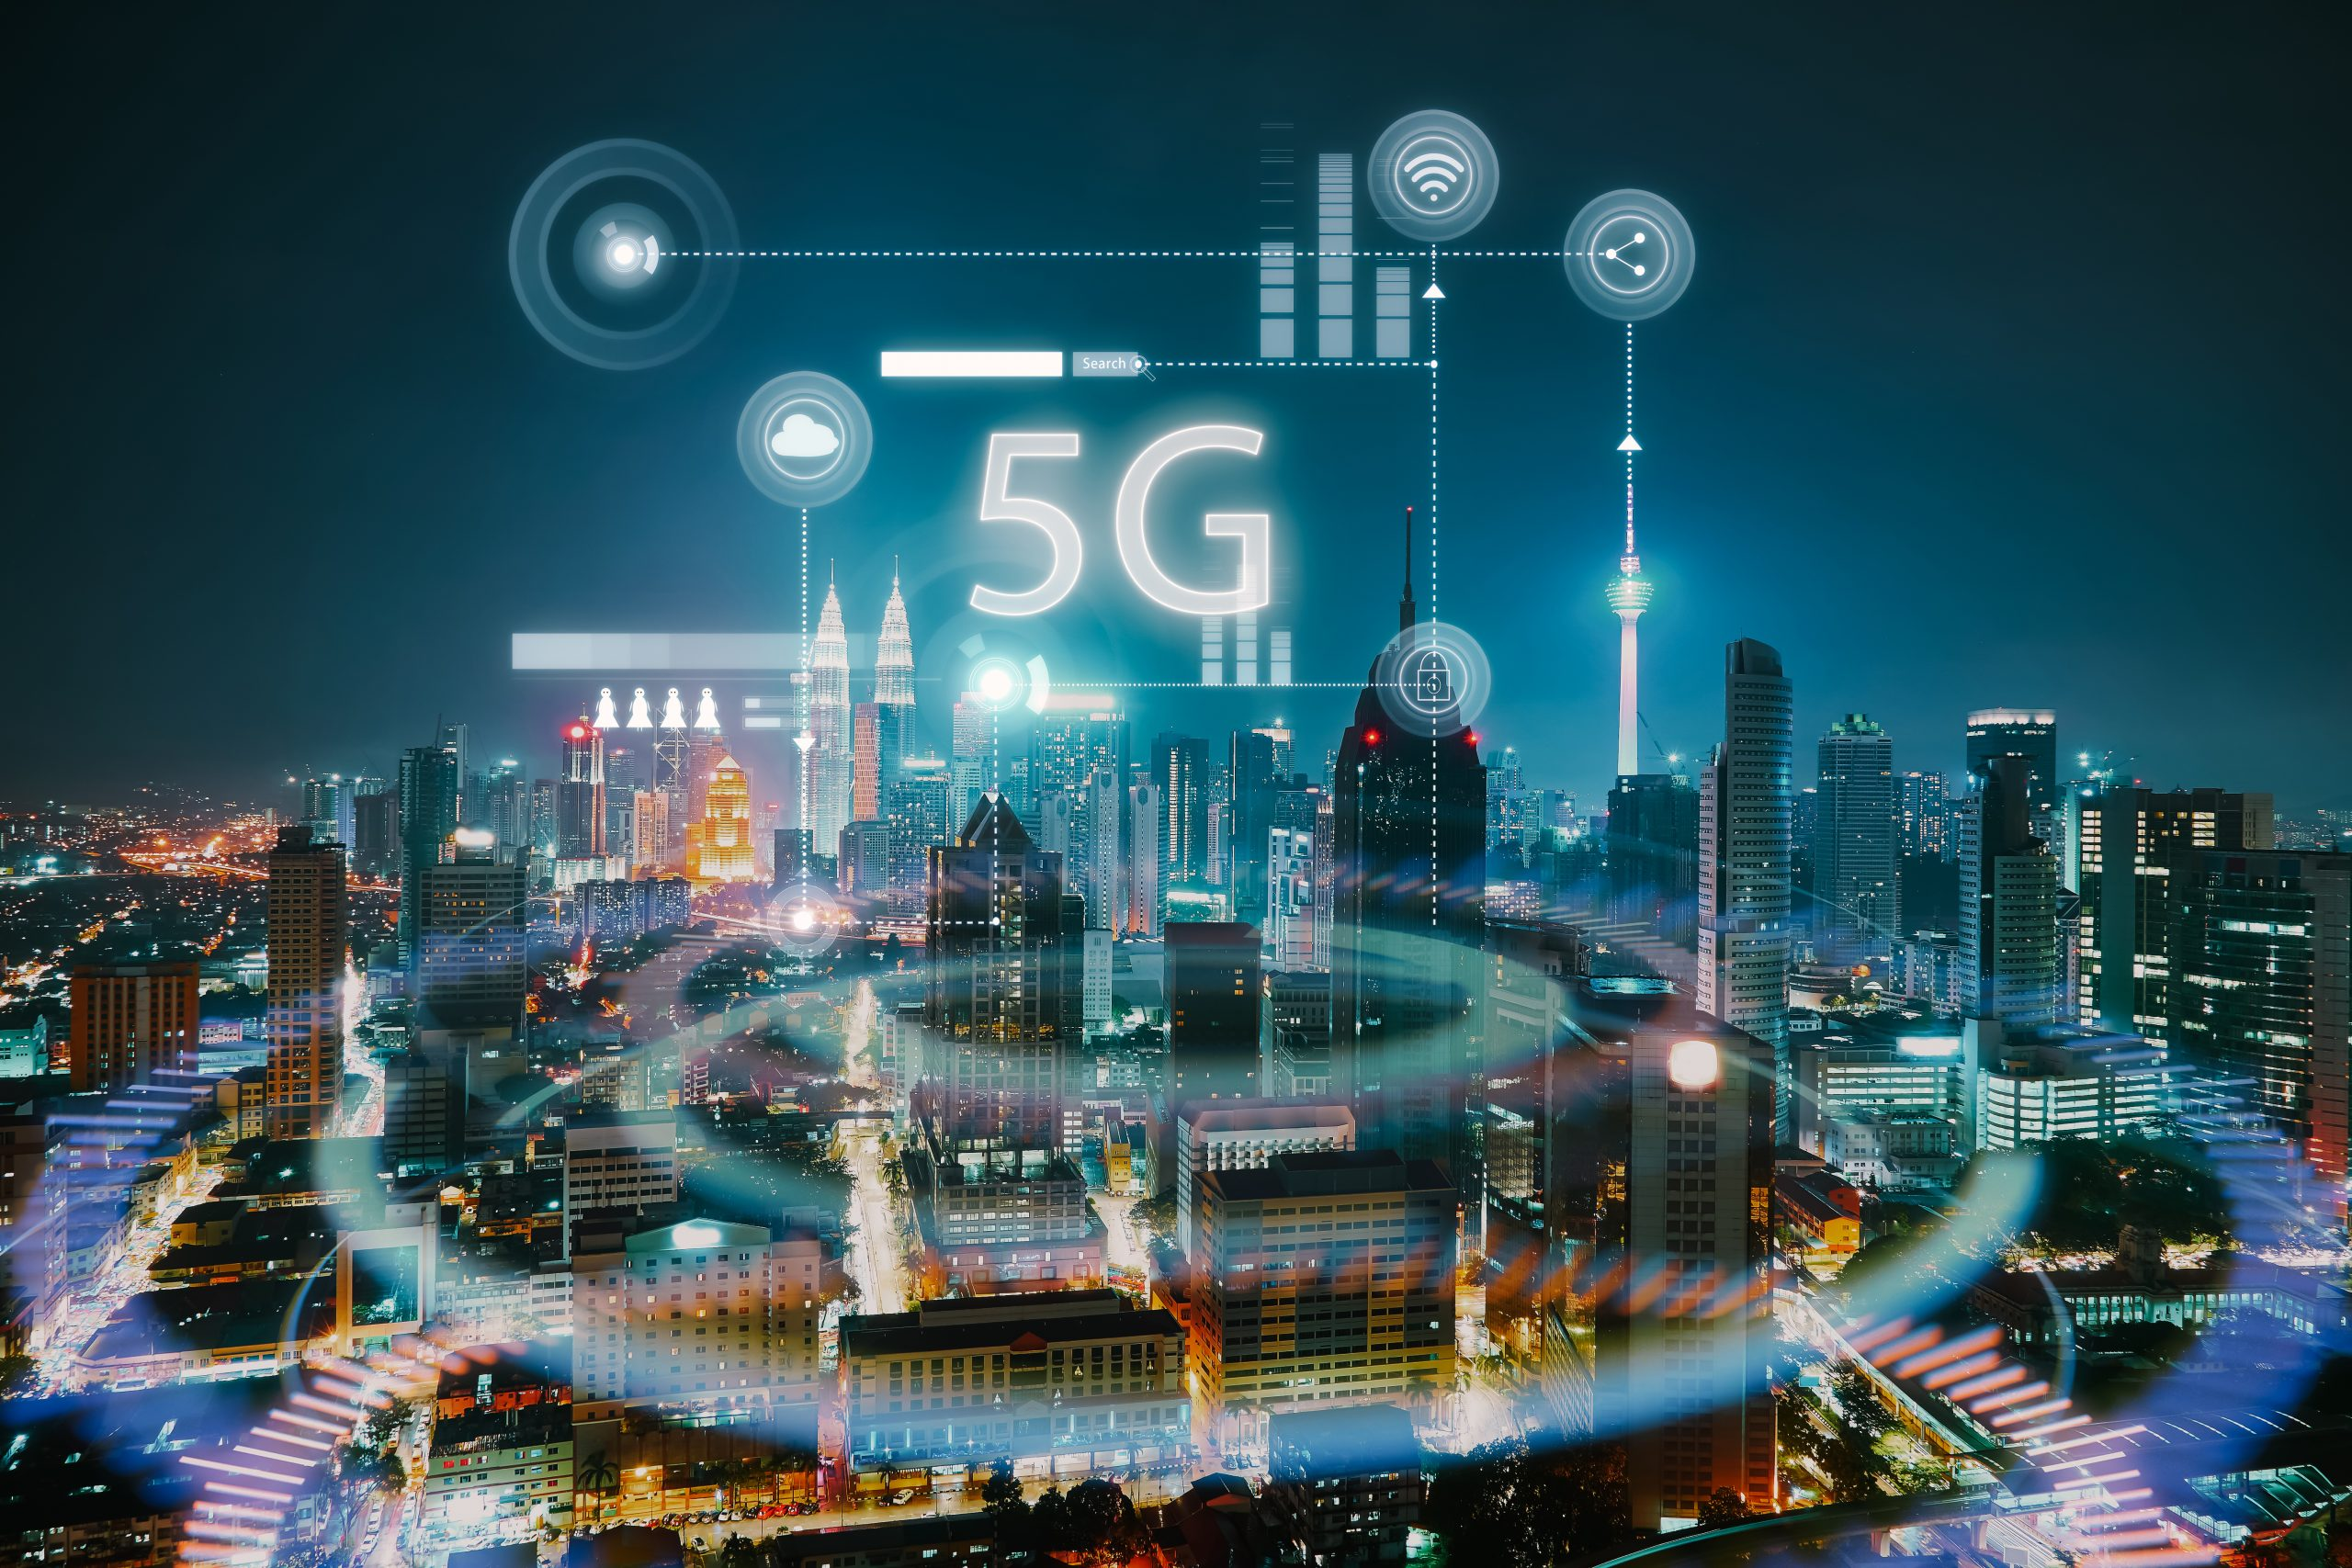 Enough of the politics. Technologically speaking, should Western governments permit Huawei's involvement in 5G networks?